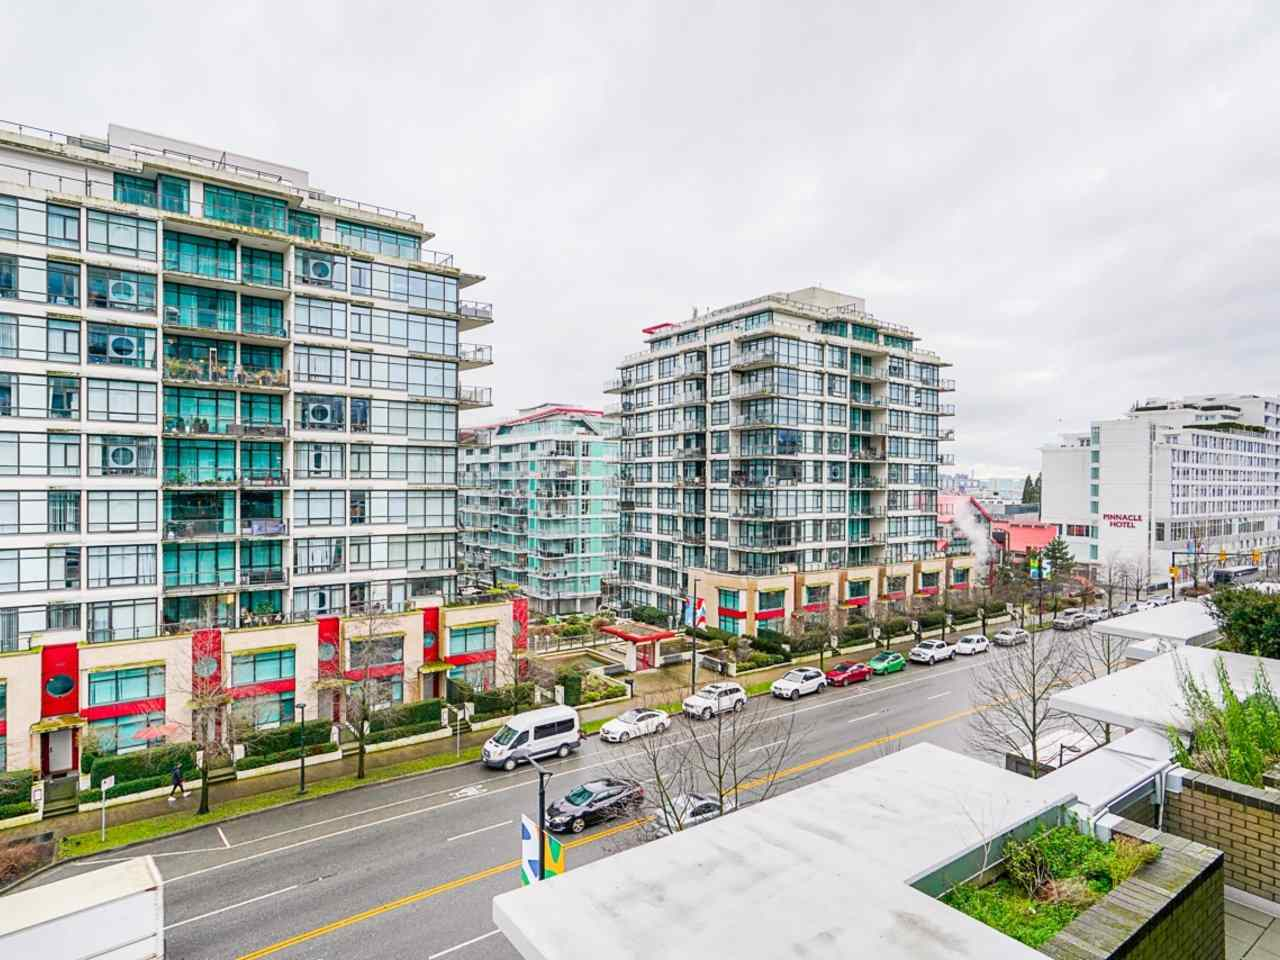 604 188 E ESPLANADE - Lower Lonsdale Apartment/Condo for sale, 2 Bedrooms (R2528391) - #31